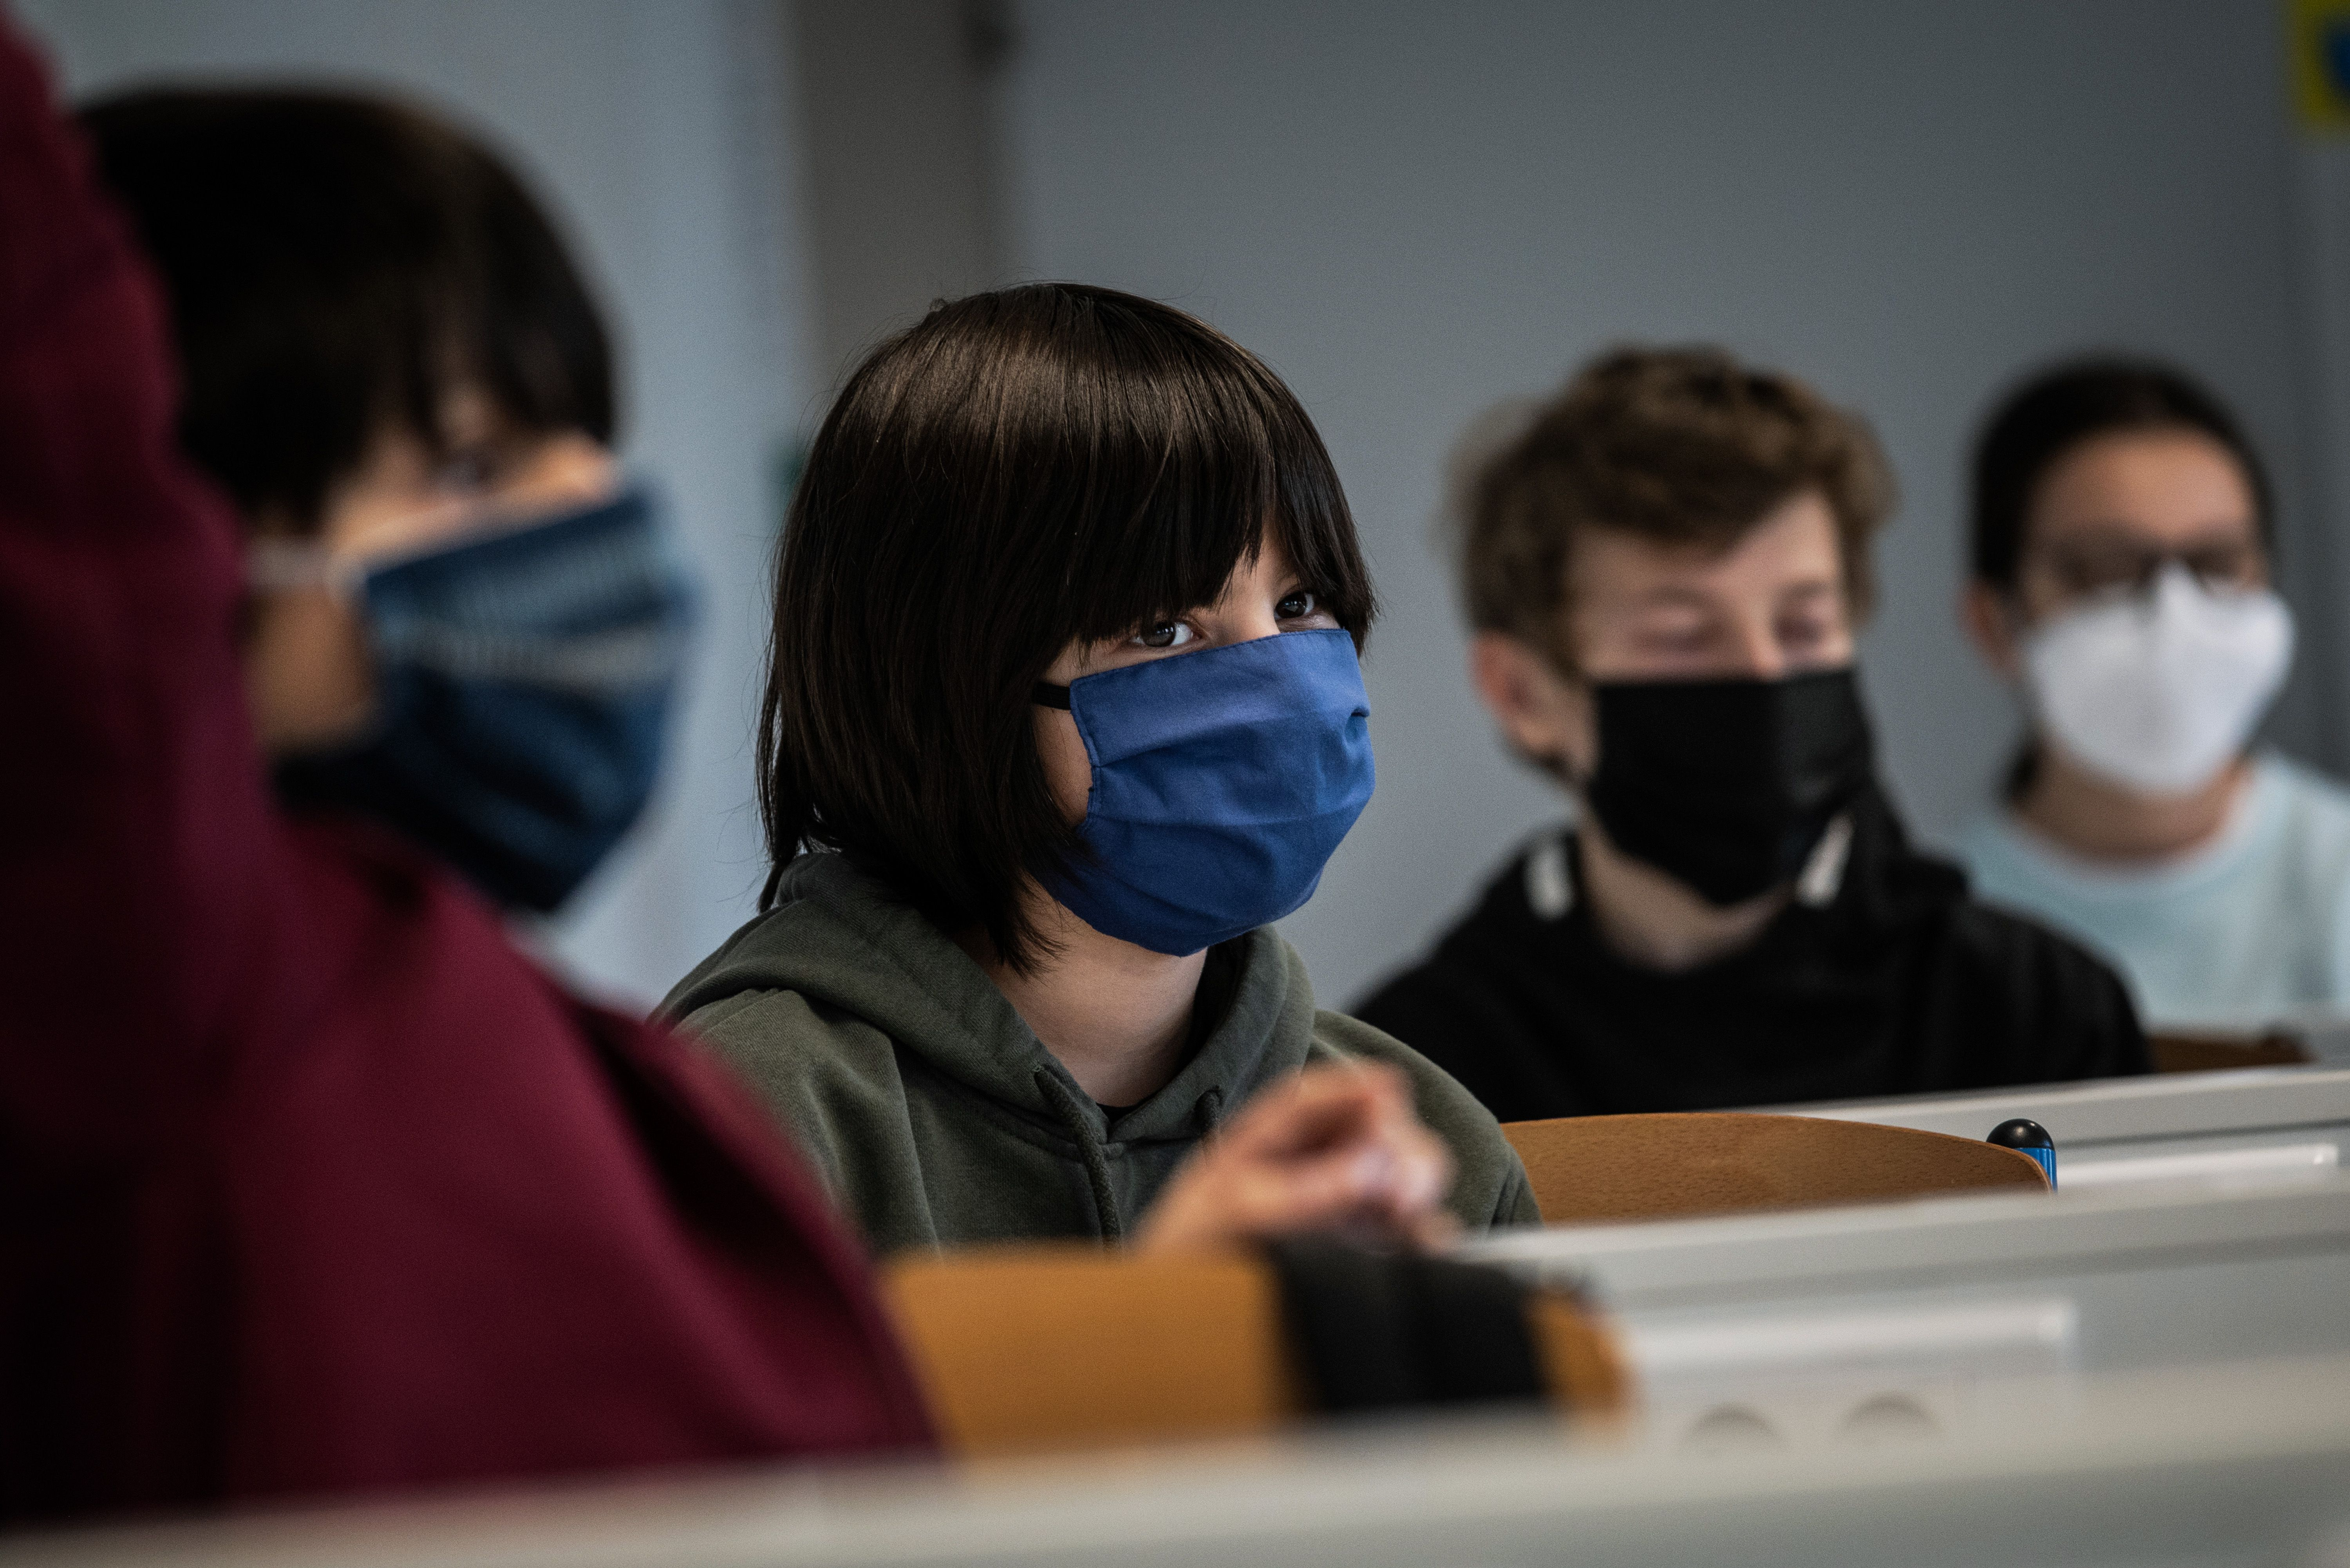 Schoolchildren attend a course in a middle school classroom, on May 18, 2020 in Lyon, central eastern France, after France eased lockdown measures to curb the spread of the COVID-19 pandemic, caused by the novel coronavirus. (Photo by JEFF PACHOUD / AFP) (Photo by JEFF PACHOUD/AFP via Getty Images)